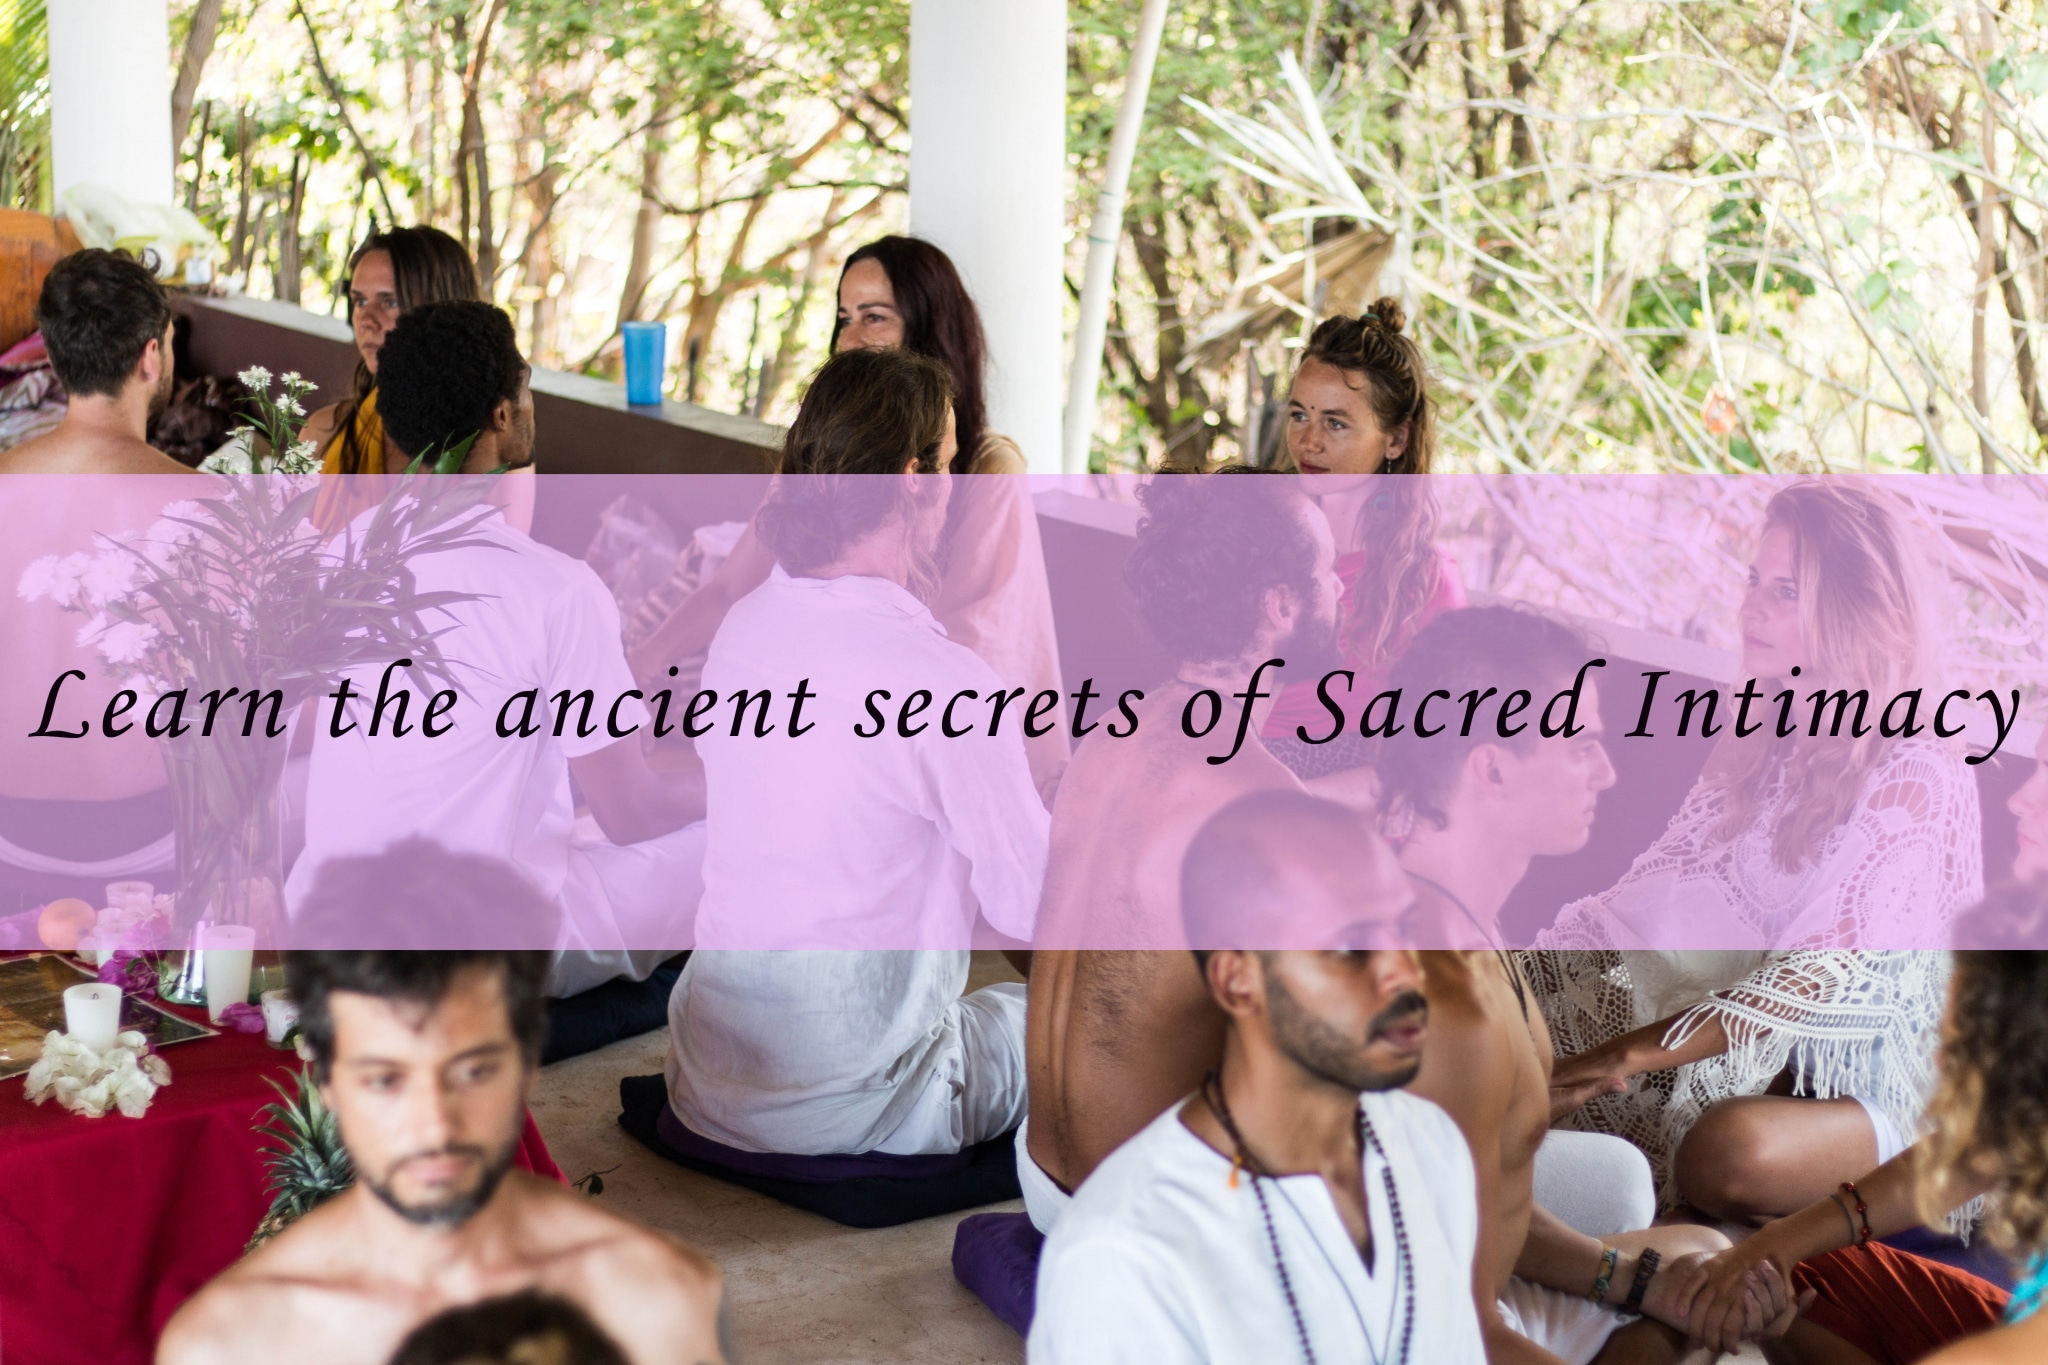 Tantra Students Learning Secrets of Sacred Intimacy